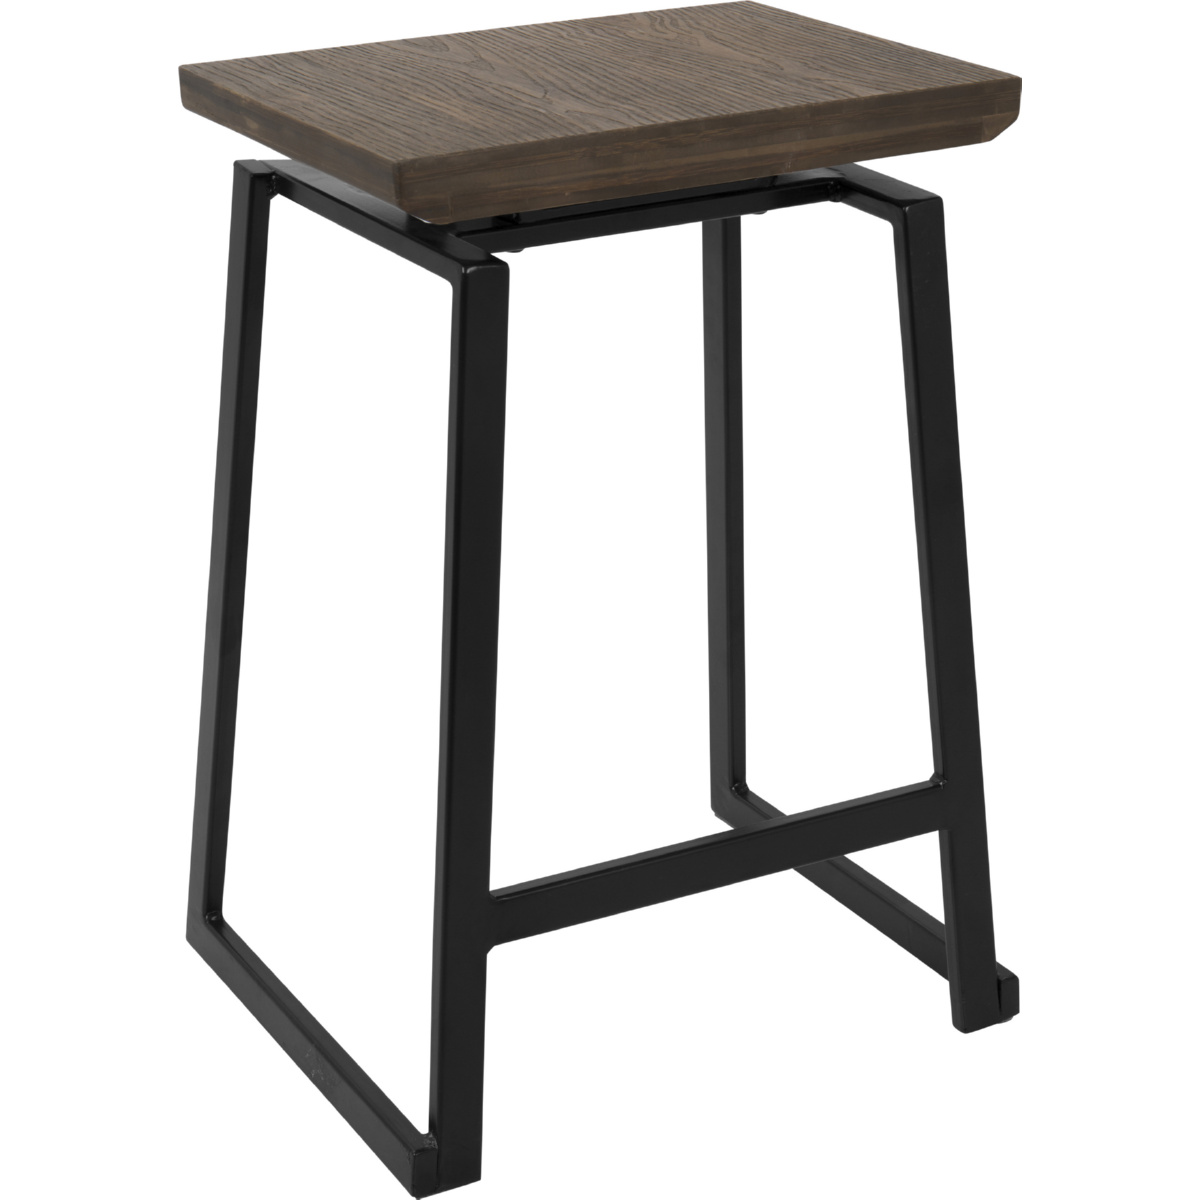 official photos 2be52 6ae51 Geo Industrial Counter Stool in Brown Wood on Black Metal (Set of 2) by  Lumisource